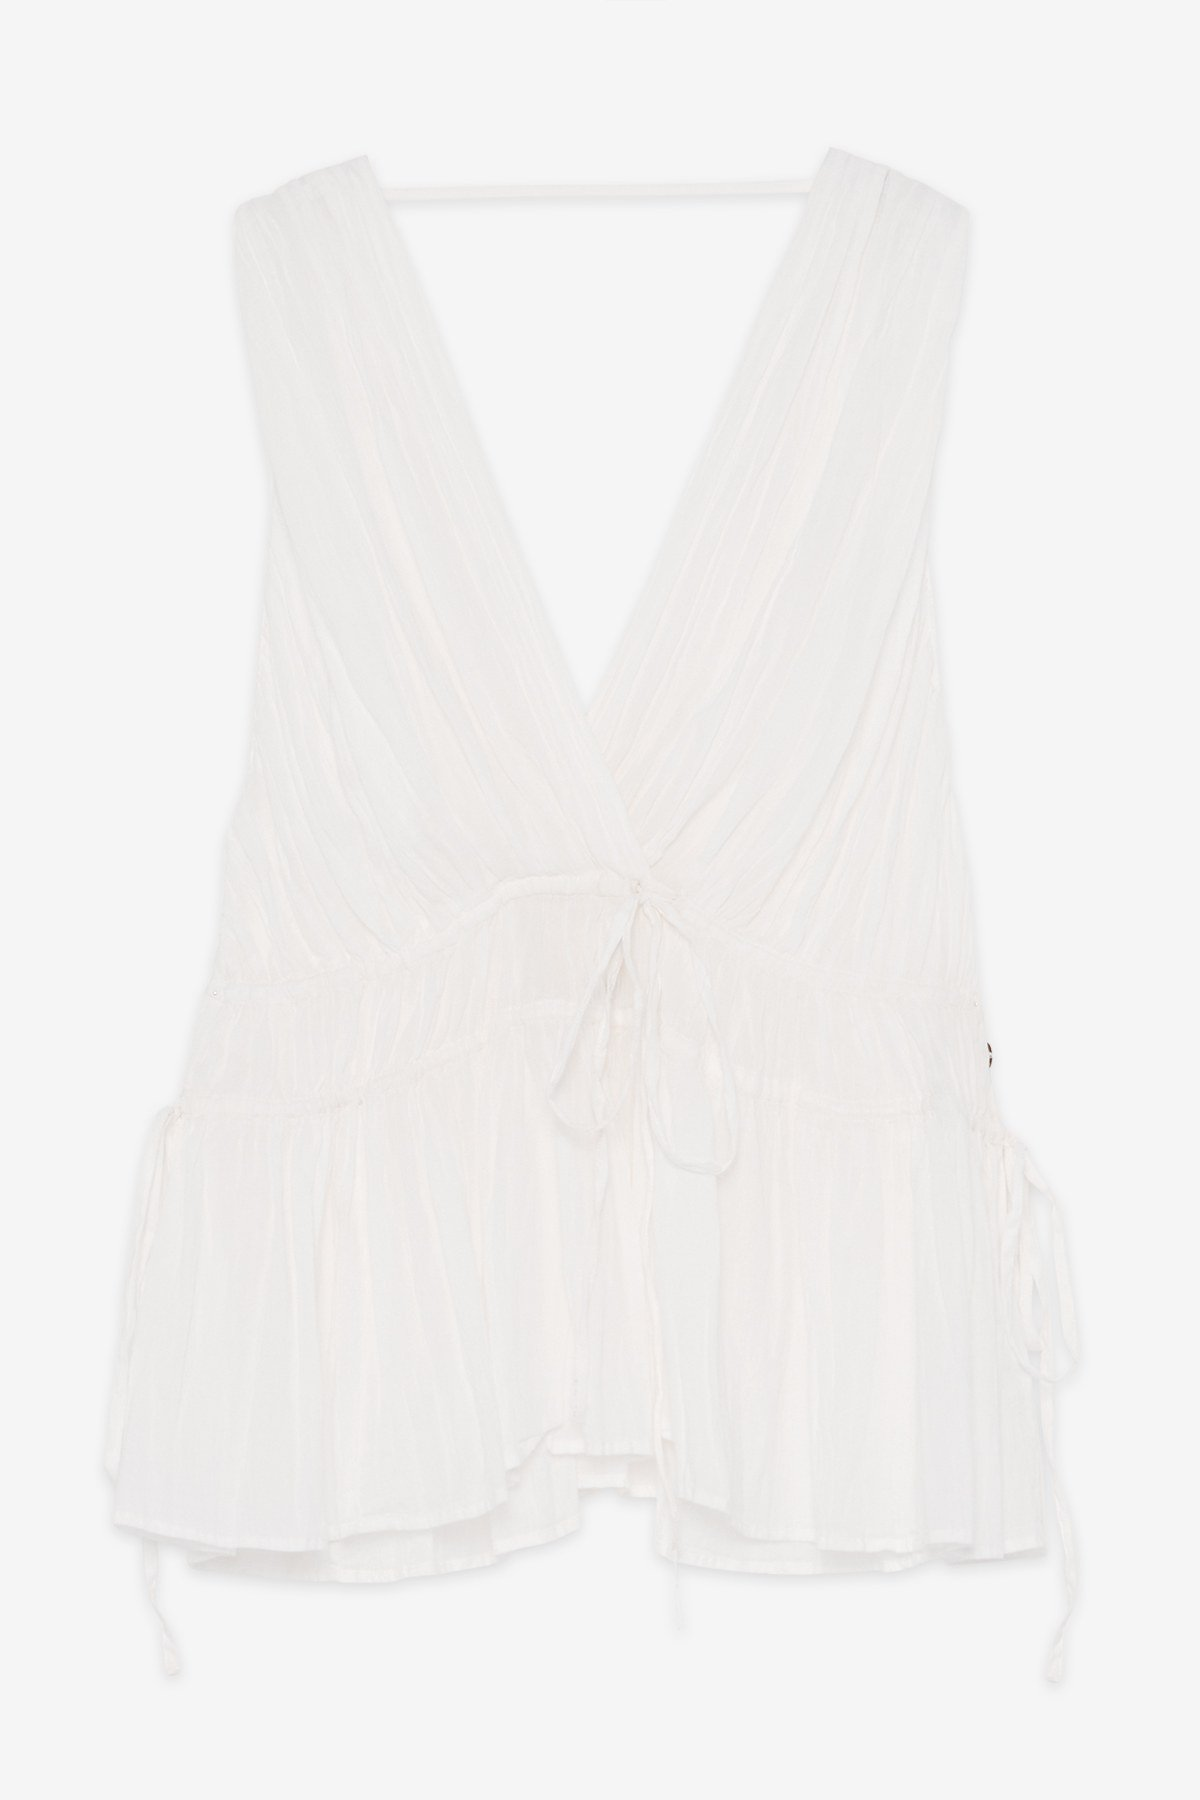 Cotton top with tucks